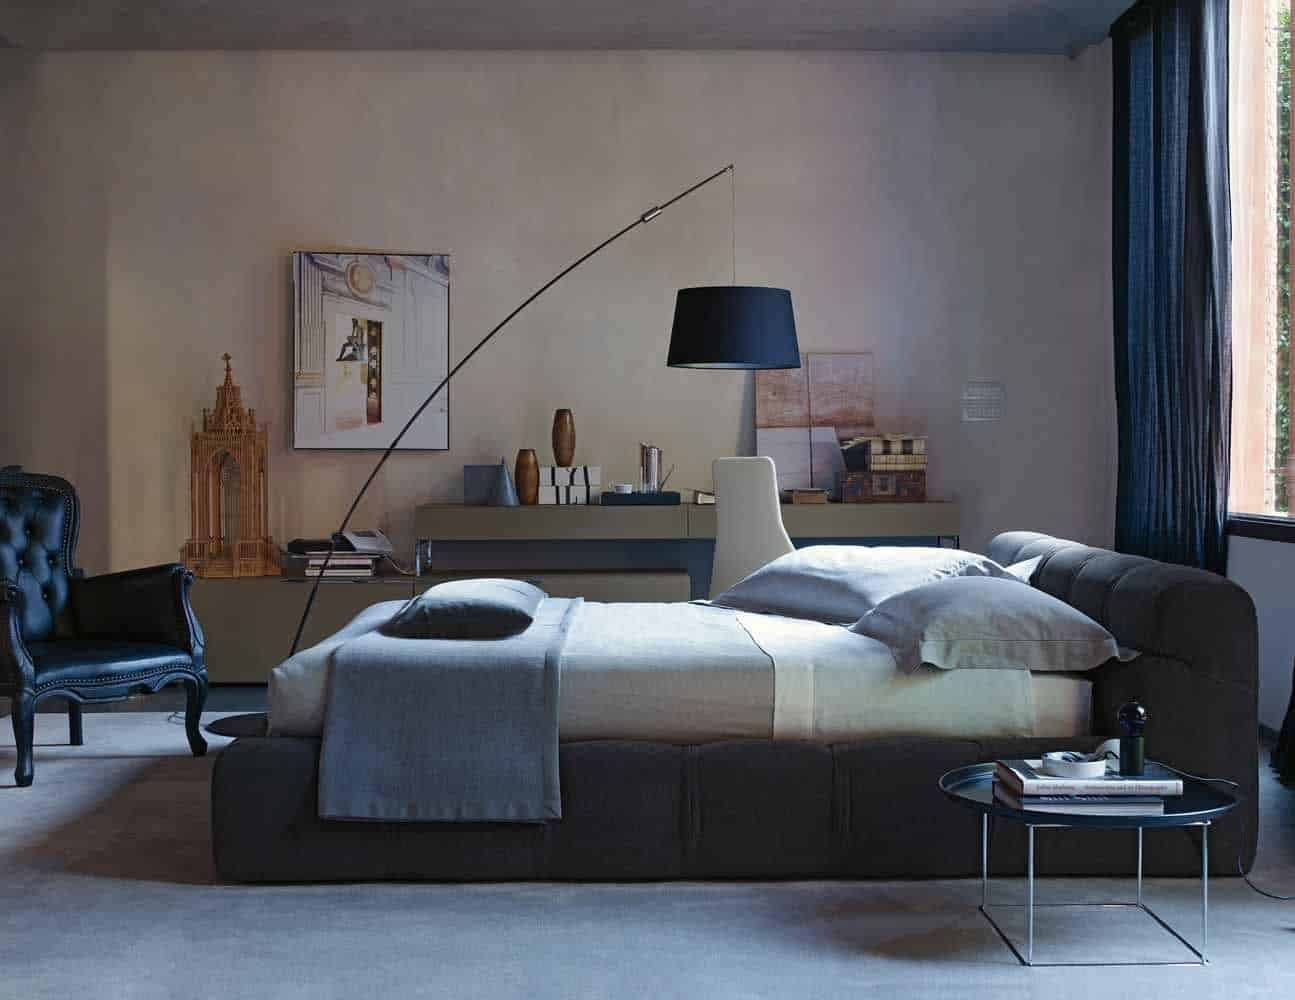 Interior Bedroom Modern 50 modern bedroom design ideas the above also draws attention to light bed only this one is a floor cantilevered over what great way incorporate